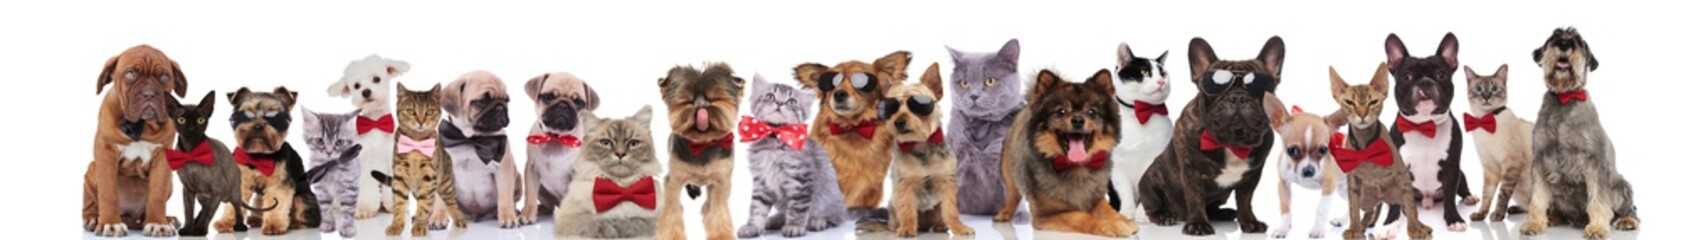 large team of cats and dogs with bowties and sunglasses